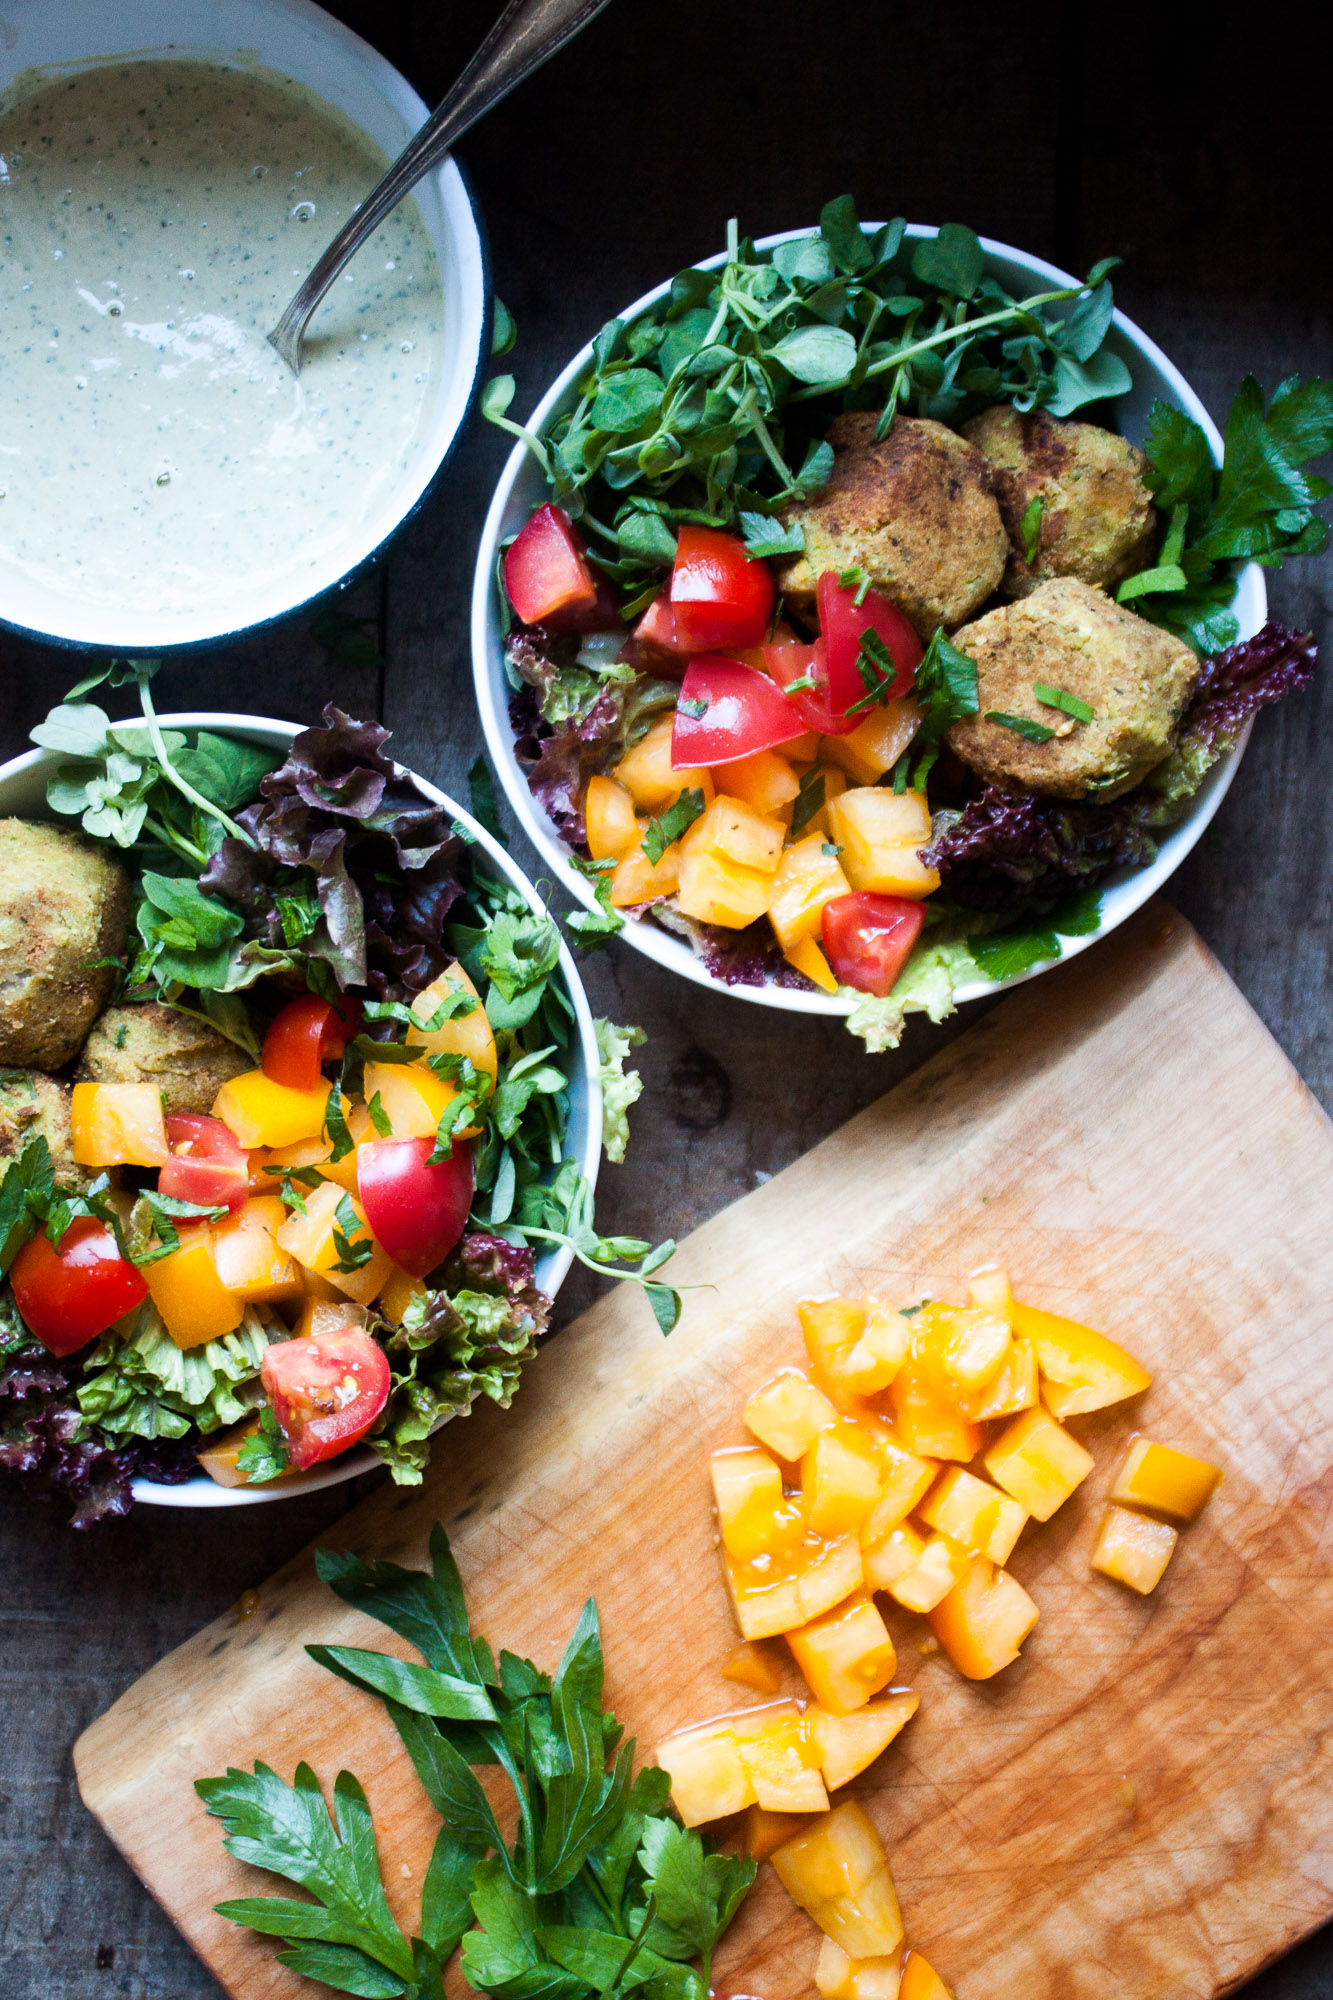 Chickpea Falafels with Parsley Tahini Sauce